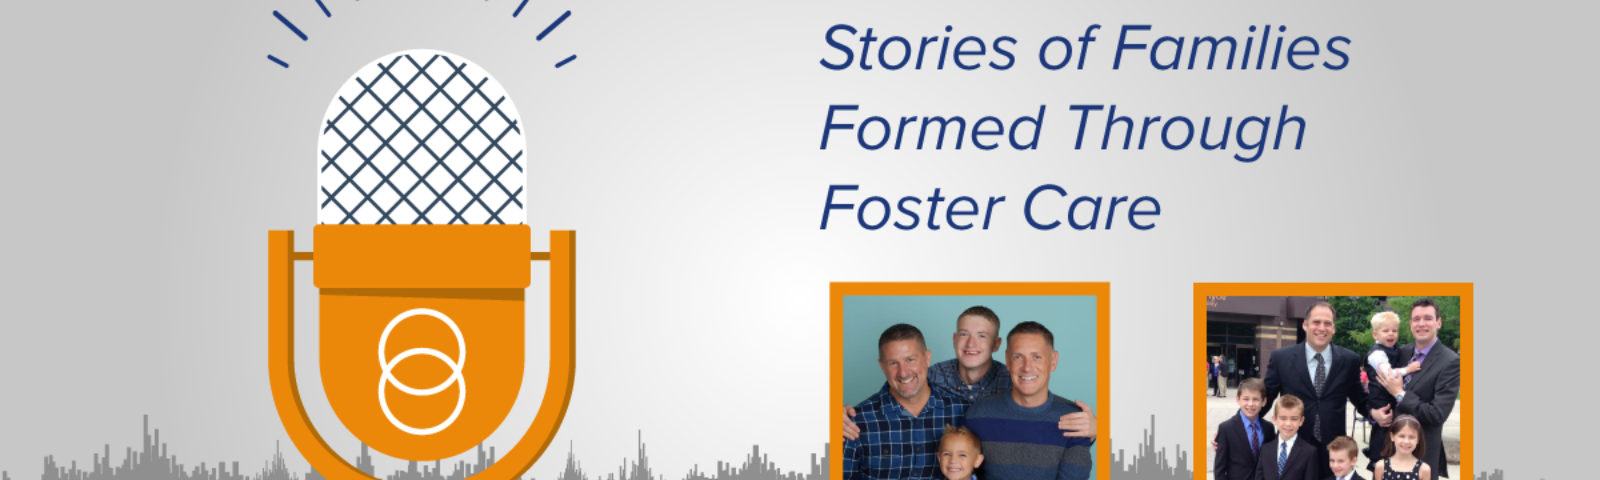 Episode #5: Stories of Families Formed Through Foster Care